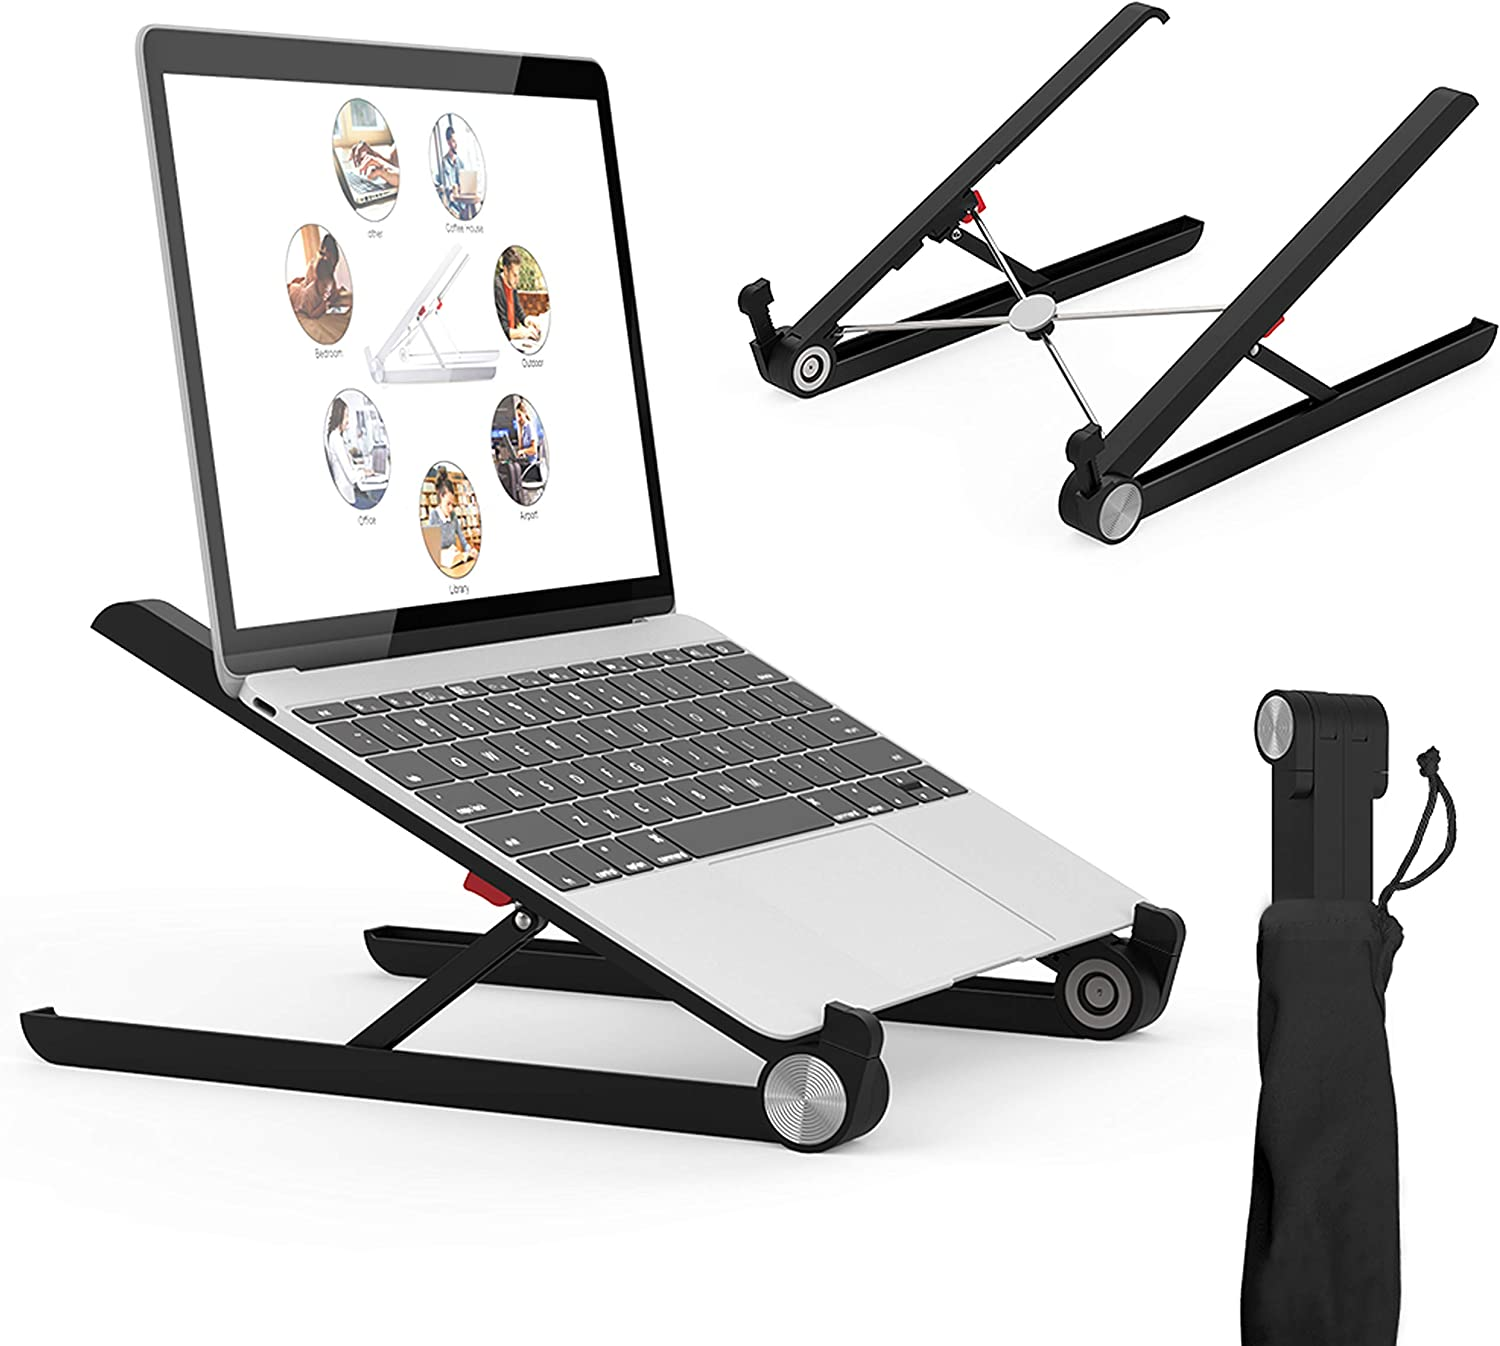 Laptop Stand, Portable Laptop Stand, Foldable Desktop Notebook Holder Mount, Adjustable Eye-Level Ergonomic Design, Portable Laptop Riser for Notebook Computer PC Pad Tablet EURPMASK (BL)